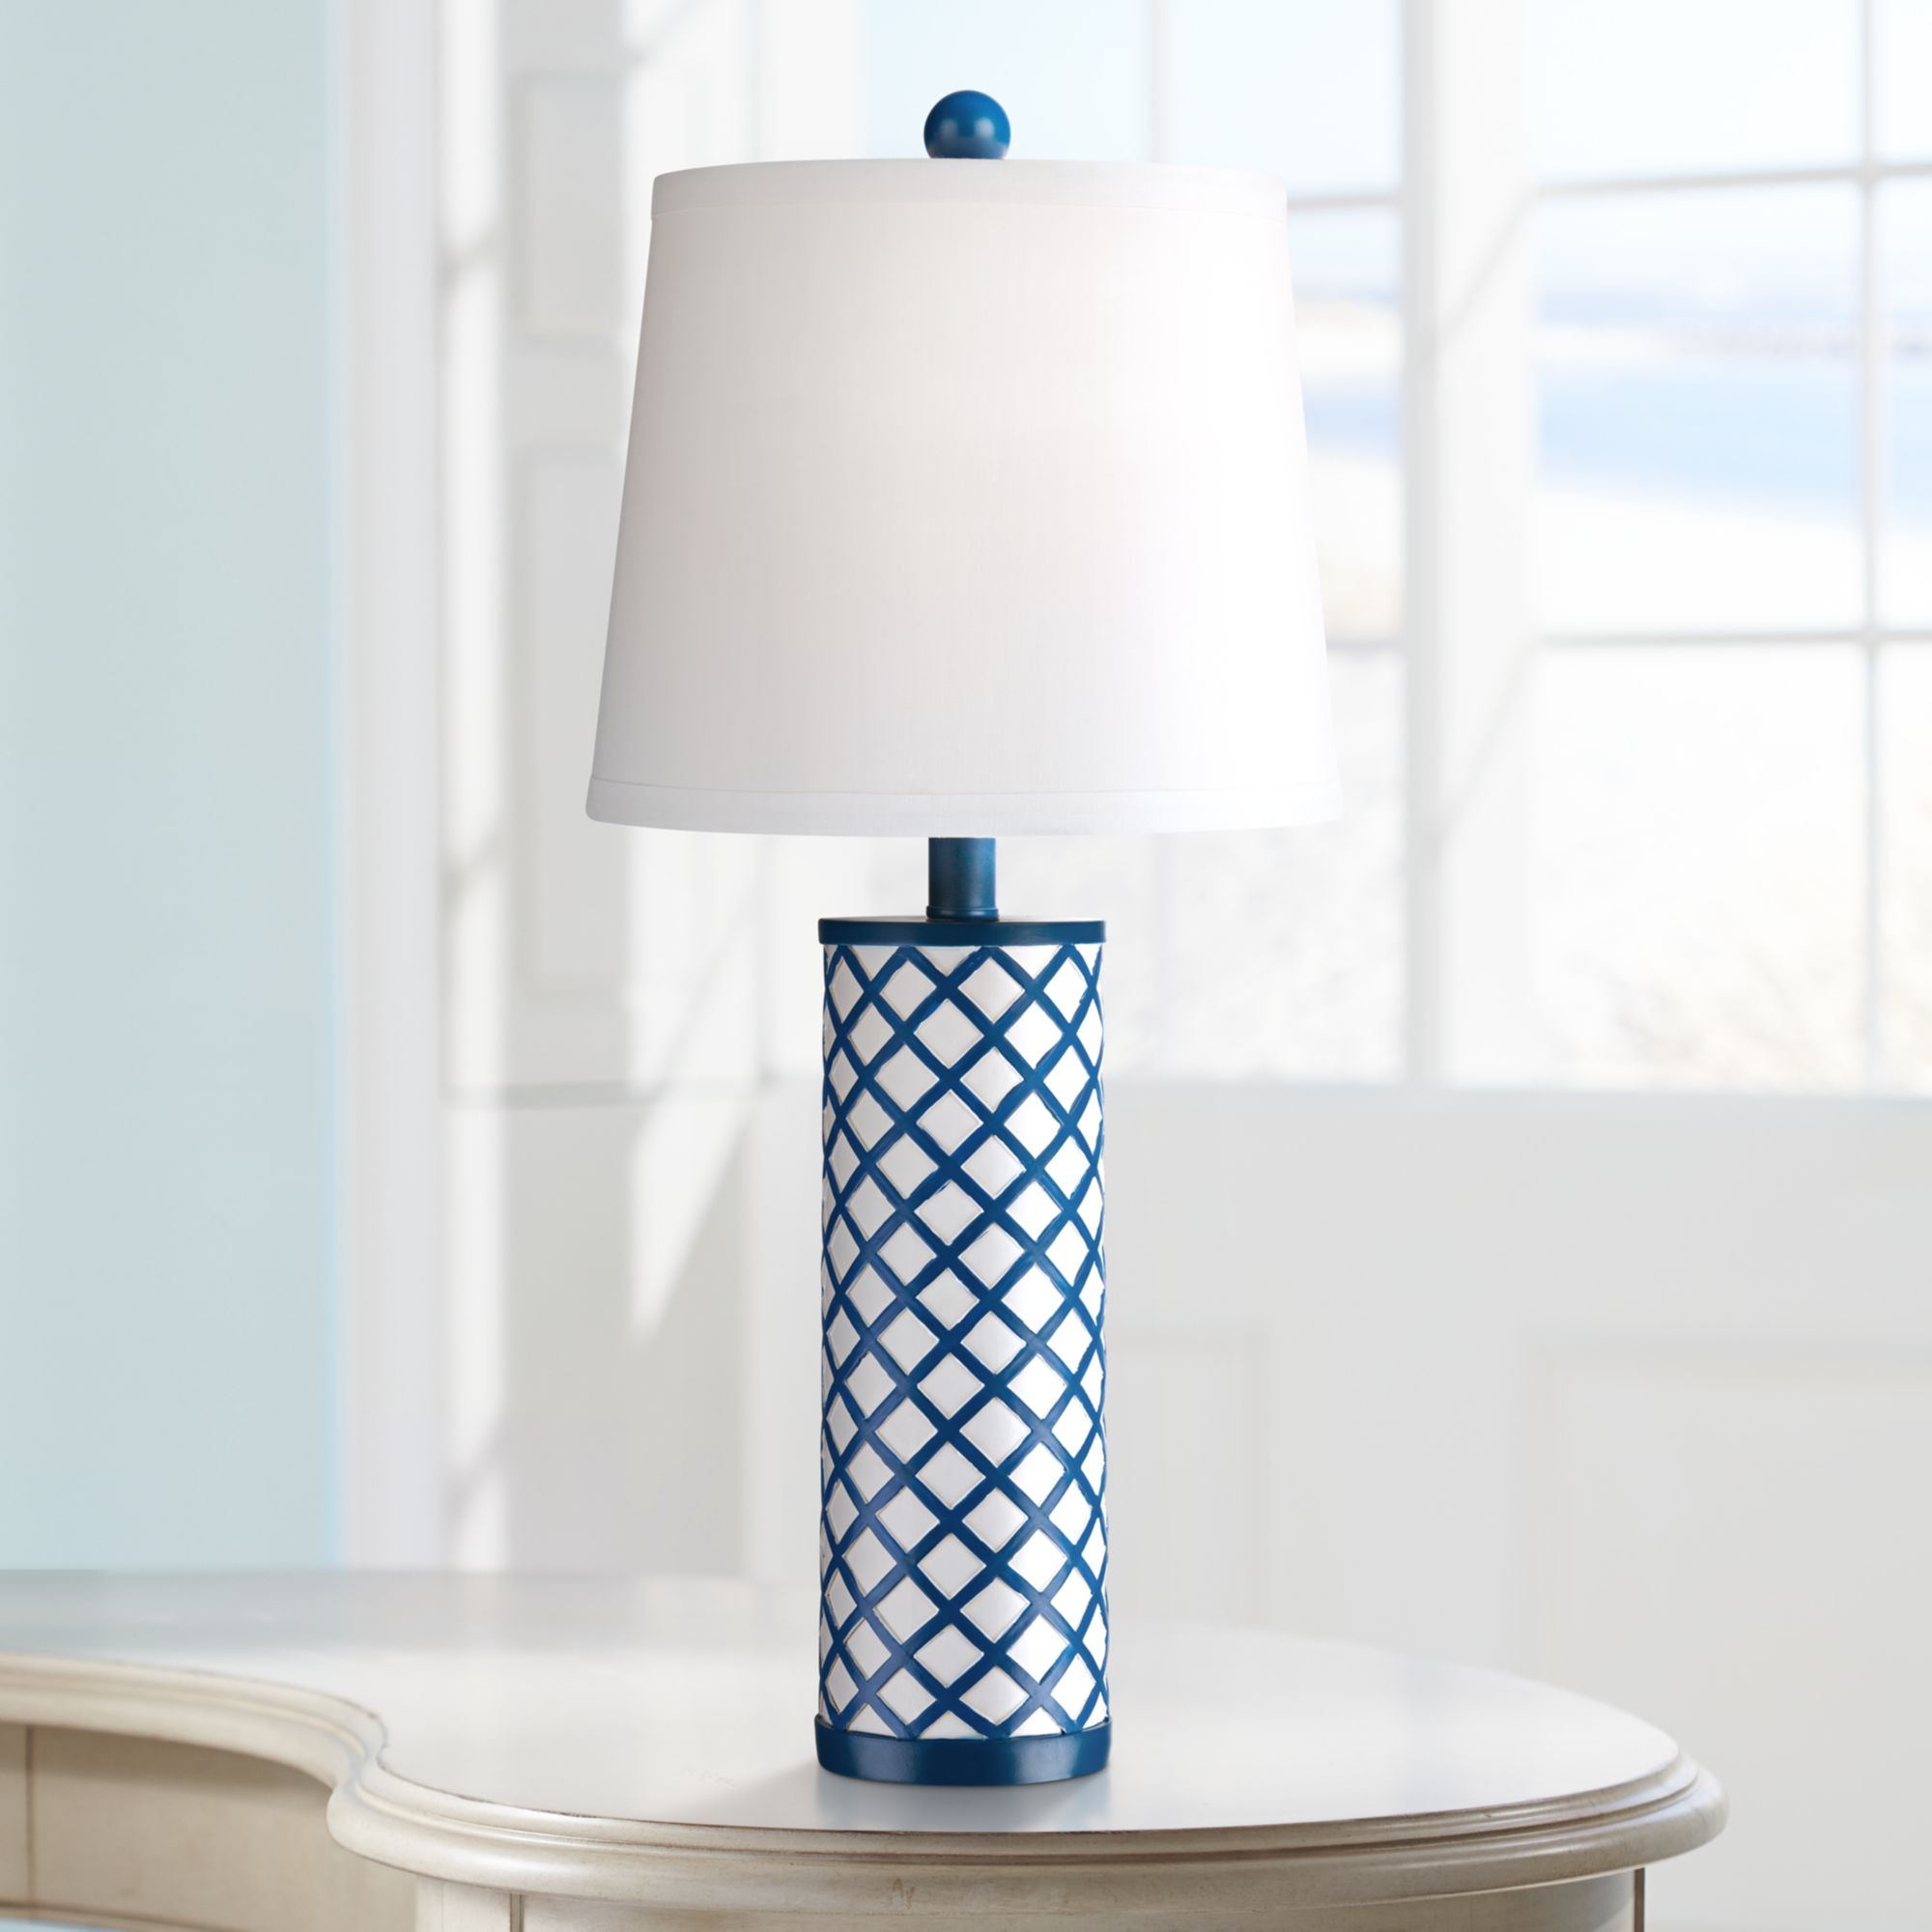 360 Lighting Modern Table Lamp Blue Lattice Column Diamond Markings